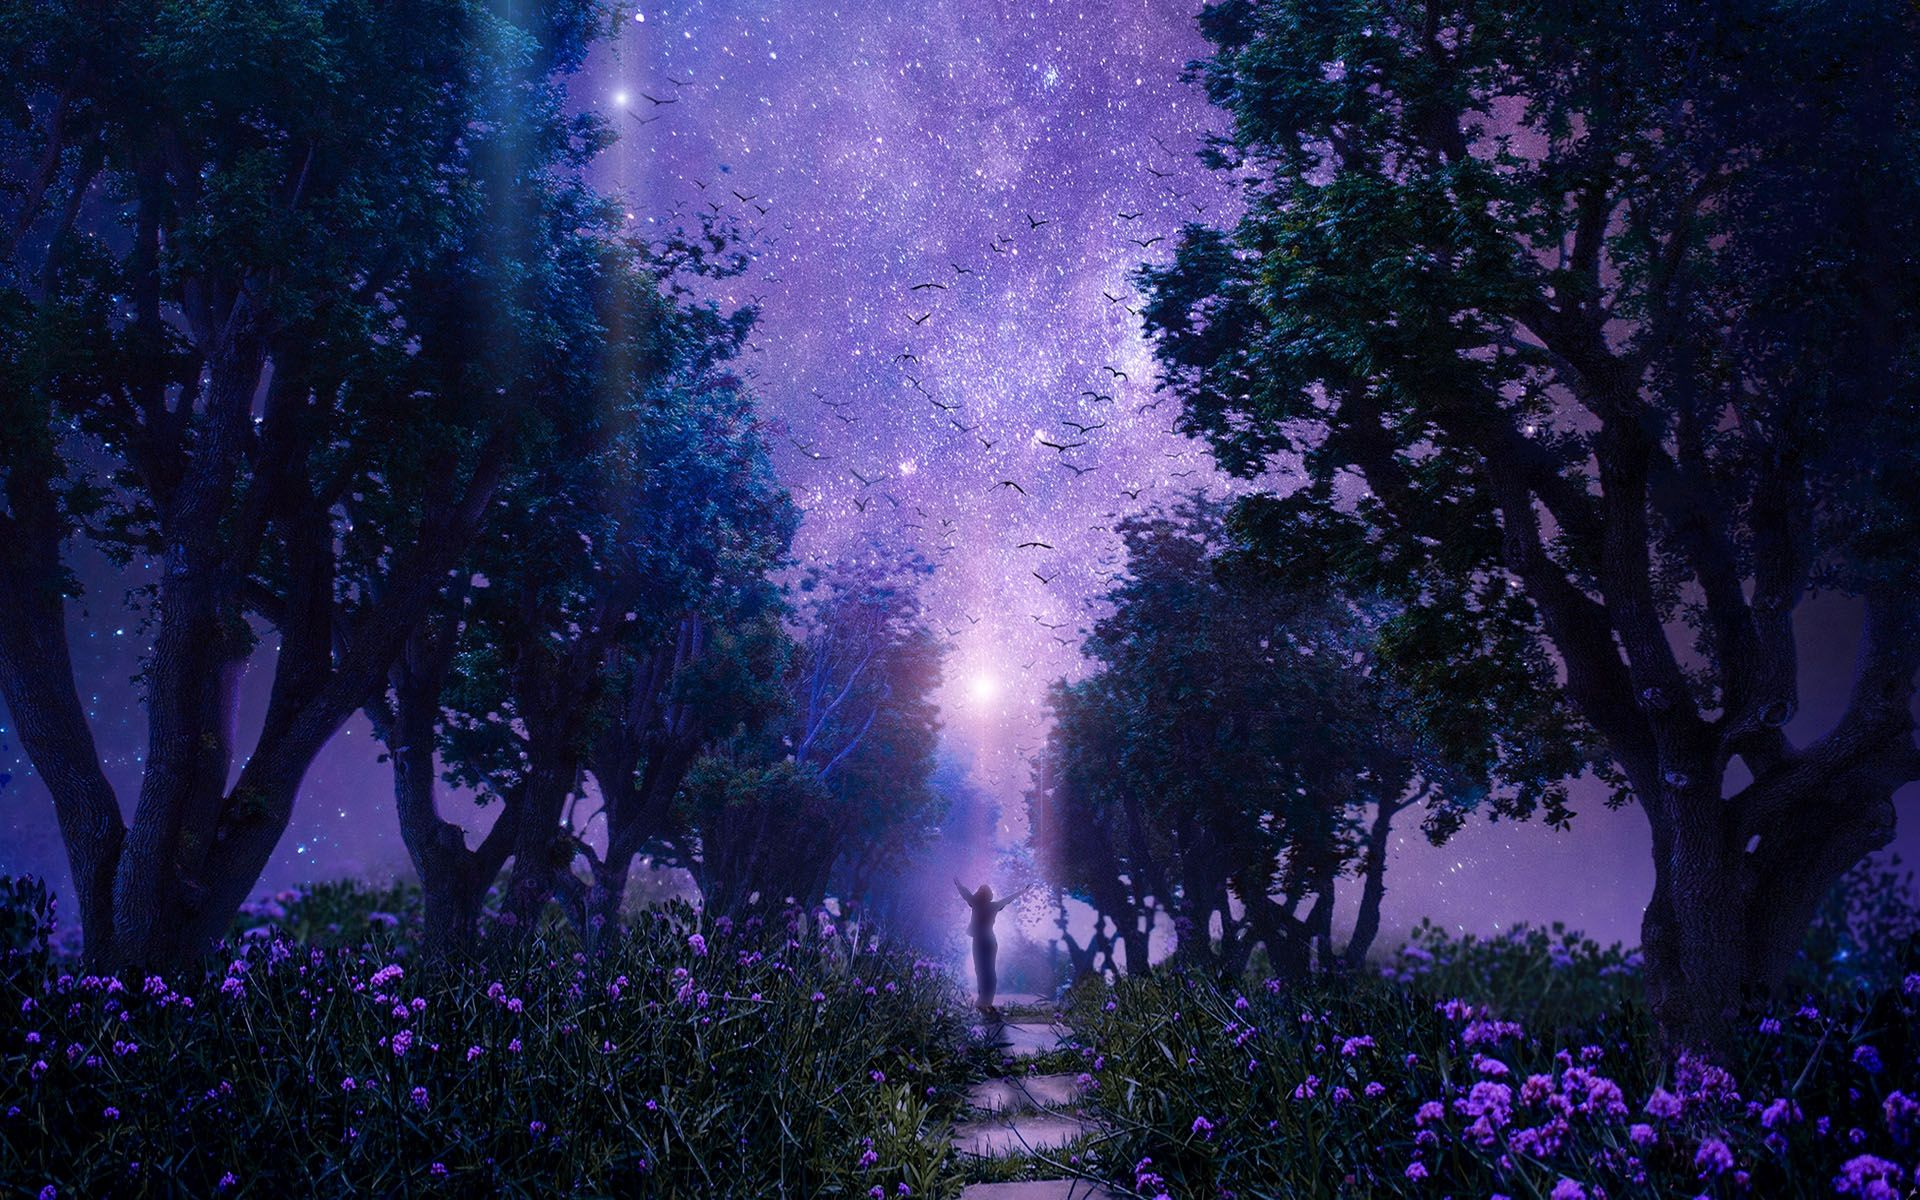 Purple Forest Wallpaper Night Sky Wallpaper Forest Pictures Anime Scenery Wallpaper